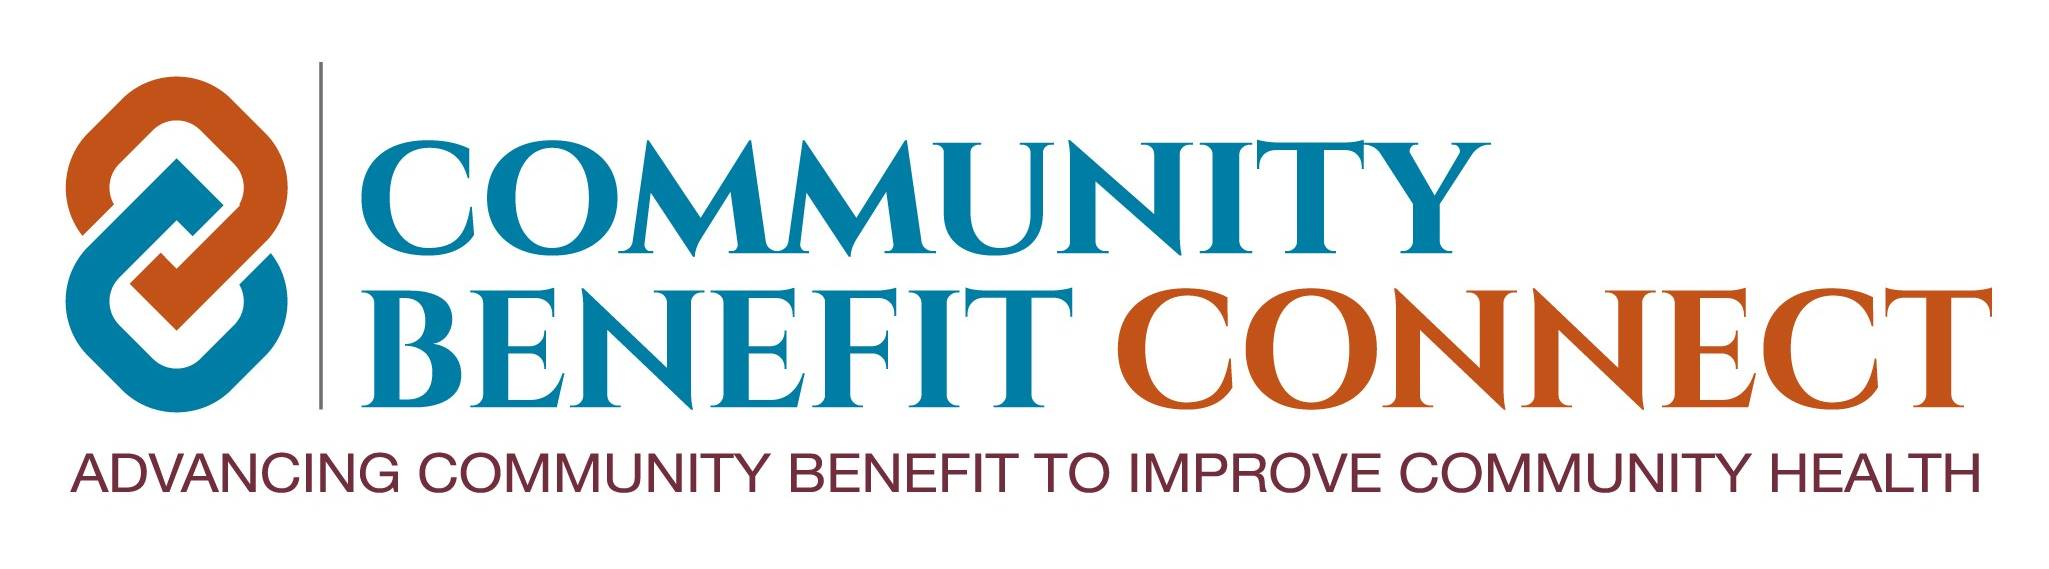 2019 Annual Community Benefit Convening